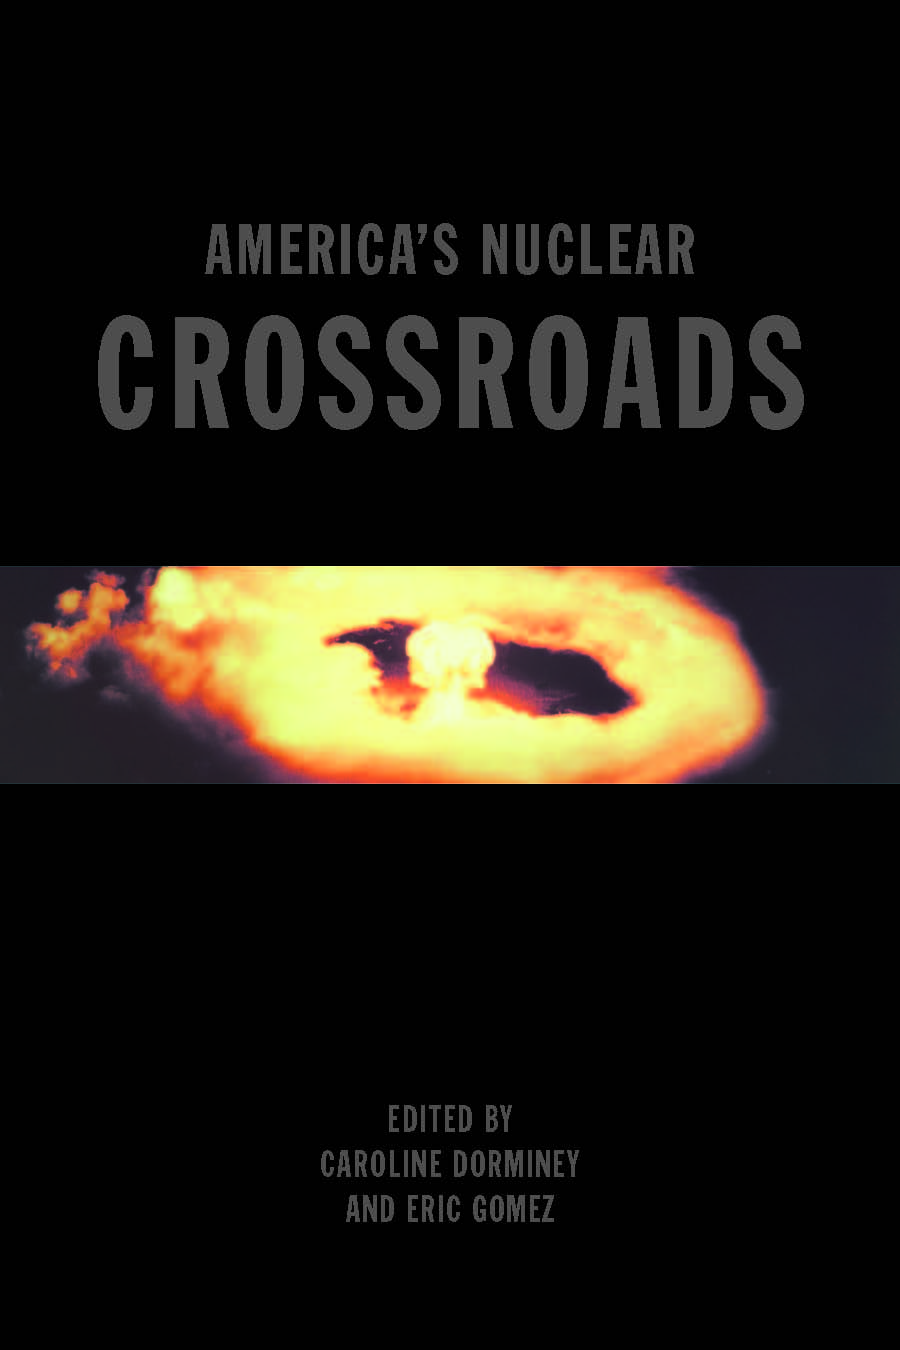 Nuclear Crossroads Final Cover